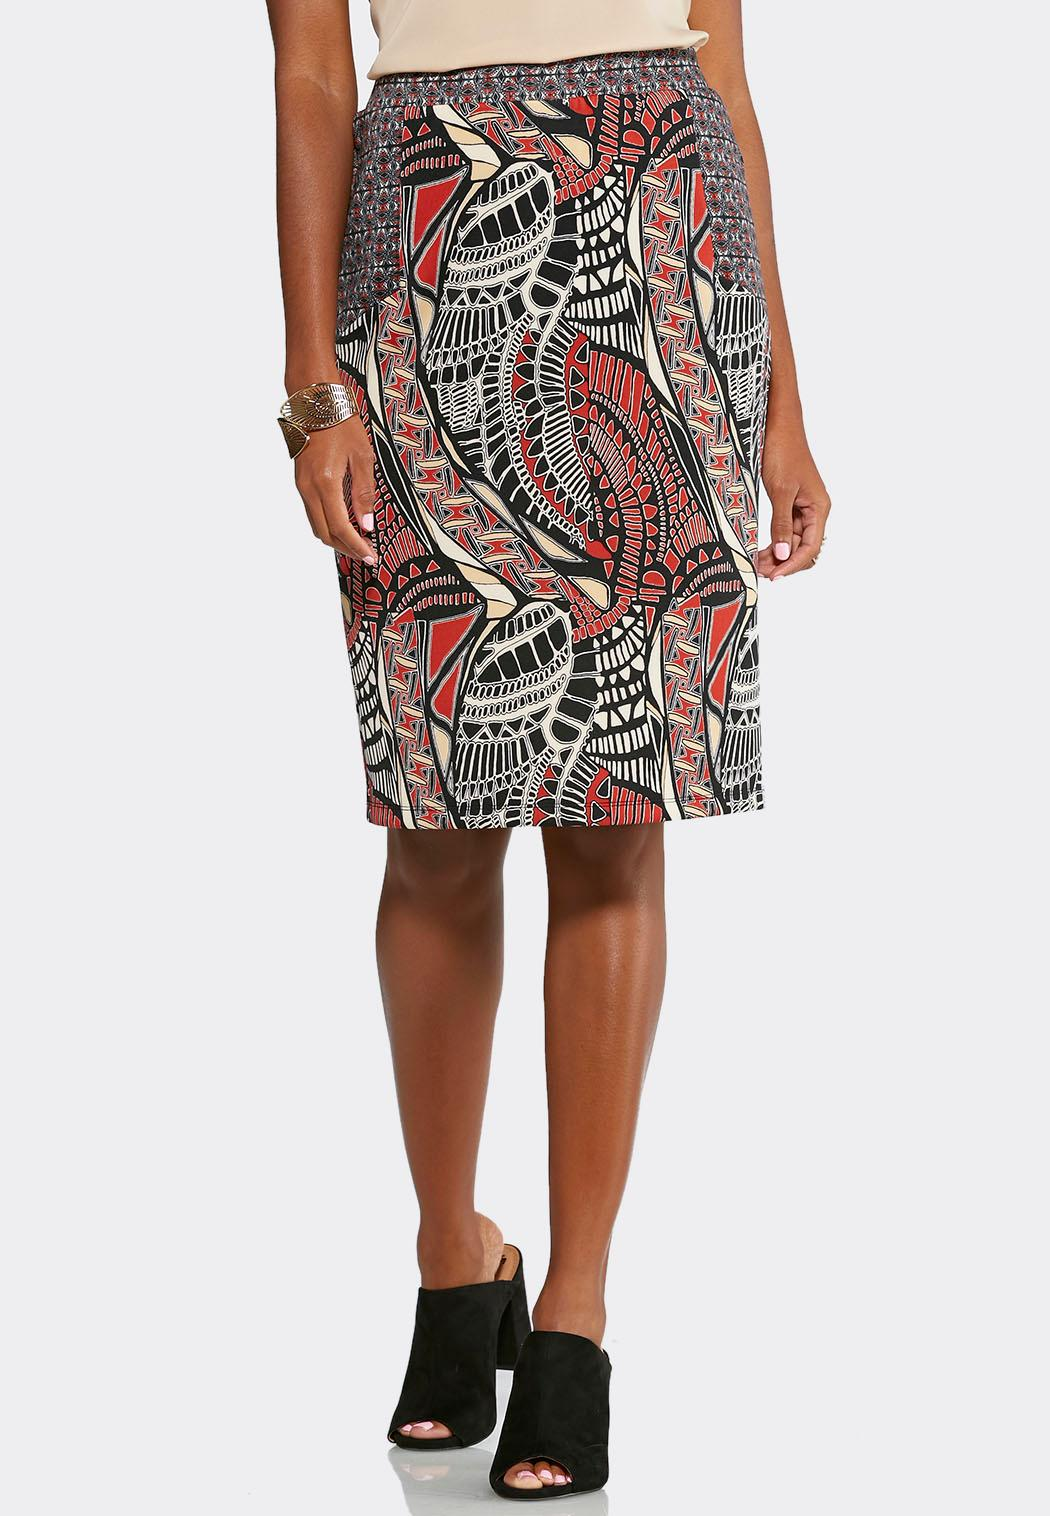 abstract tribal midi skirt plus below the knee cato fashions